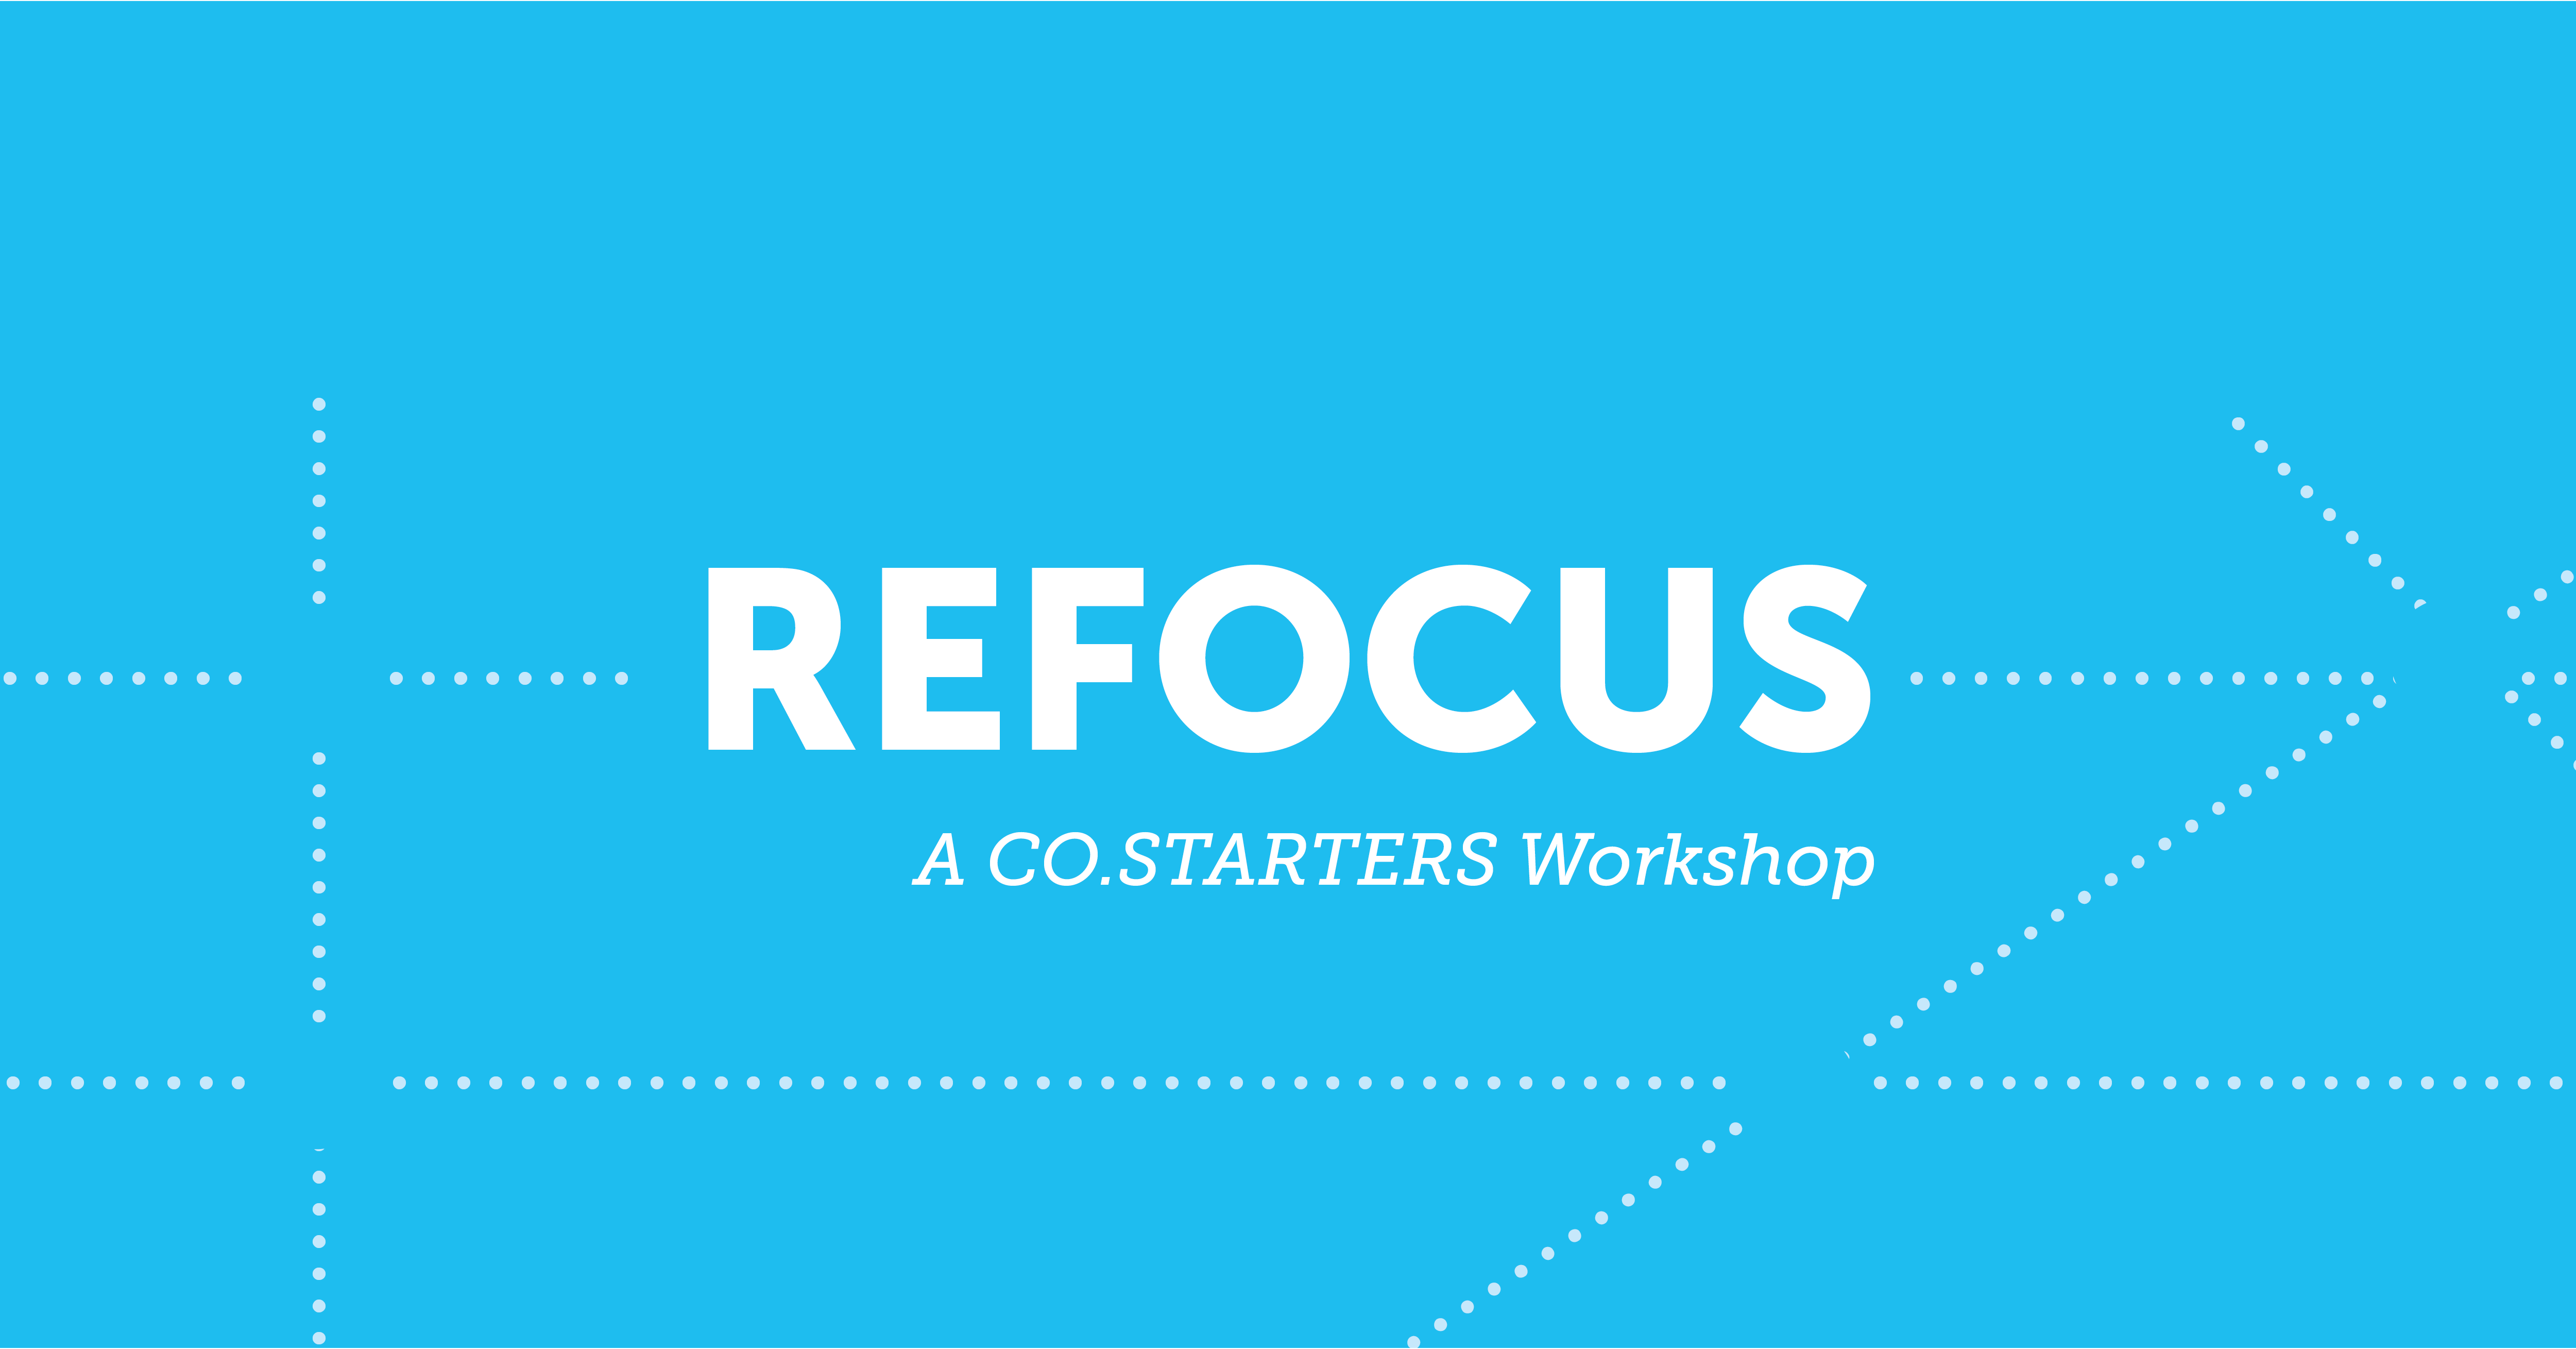 REFOCUS: A CO.STARTERS Workshop